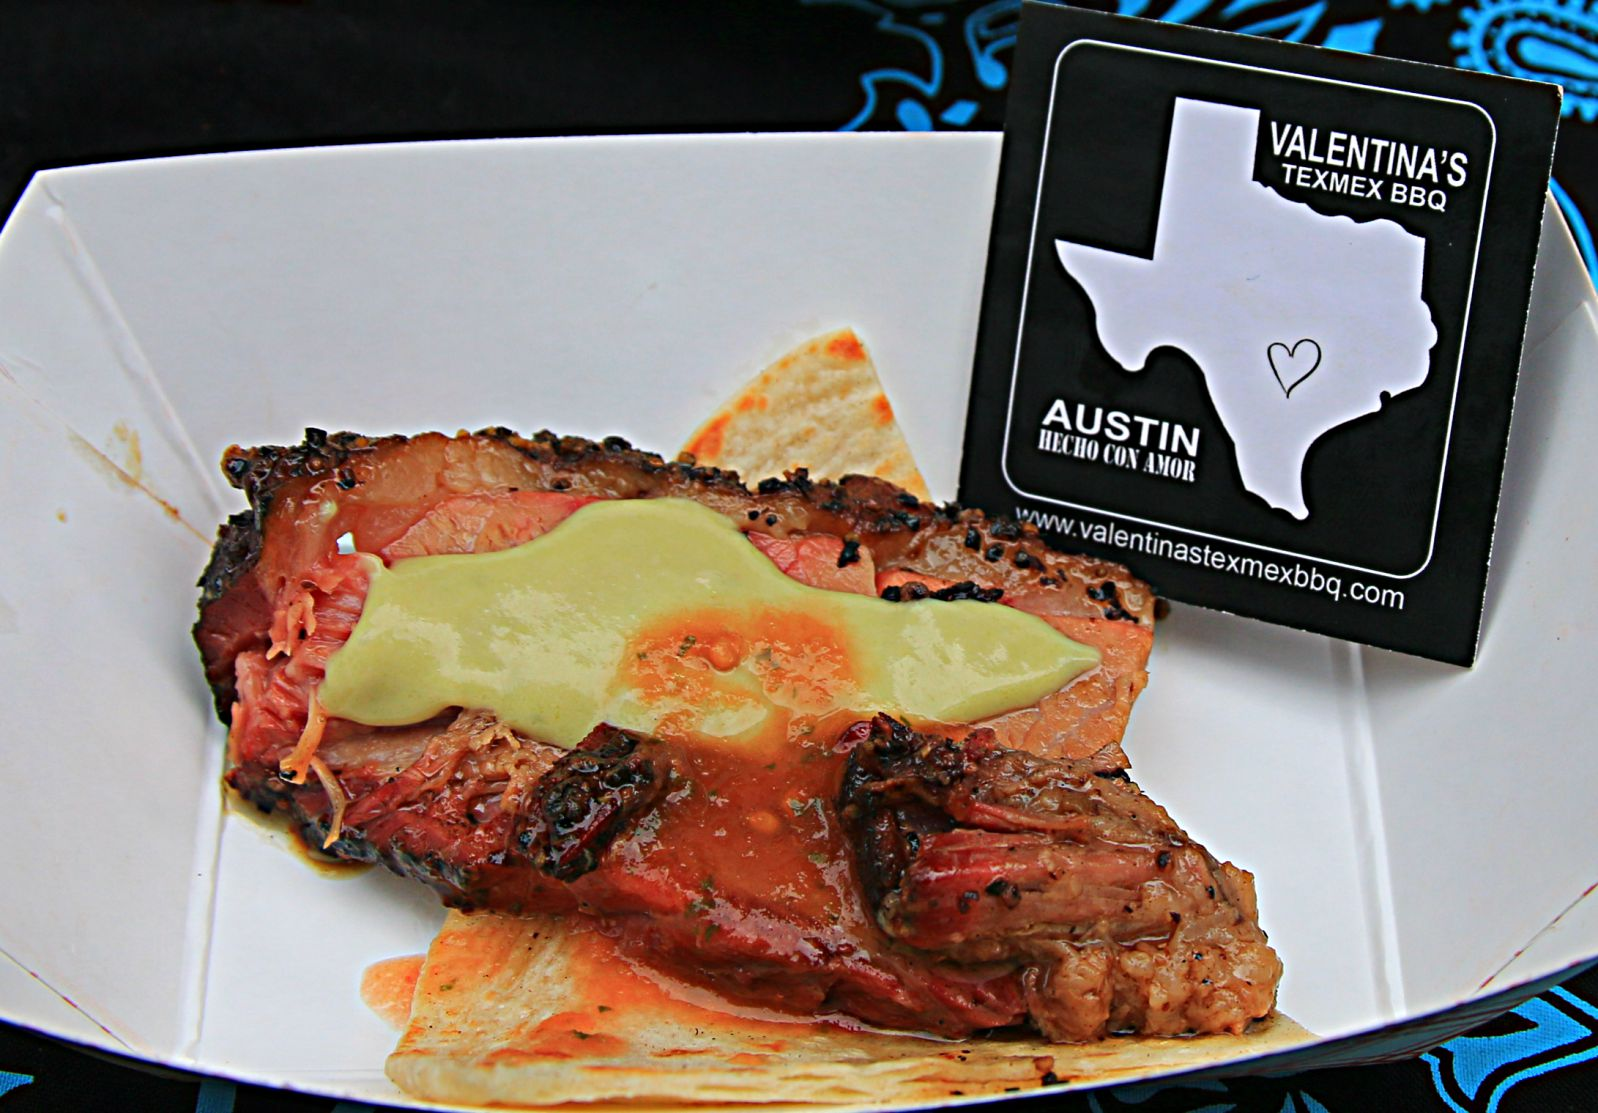 Valentina's Texmex BBQ brisket and tortilla at Smoked Dallas 2016